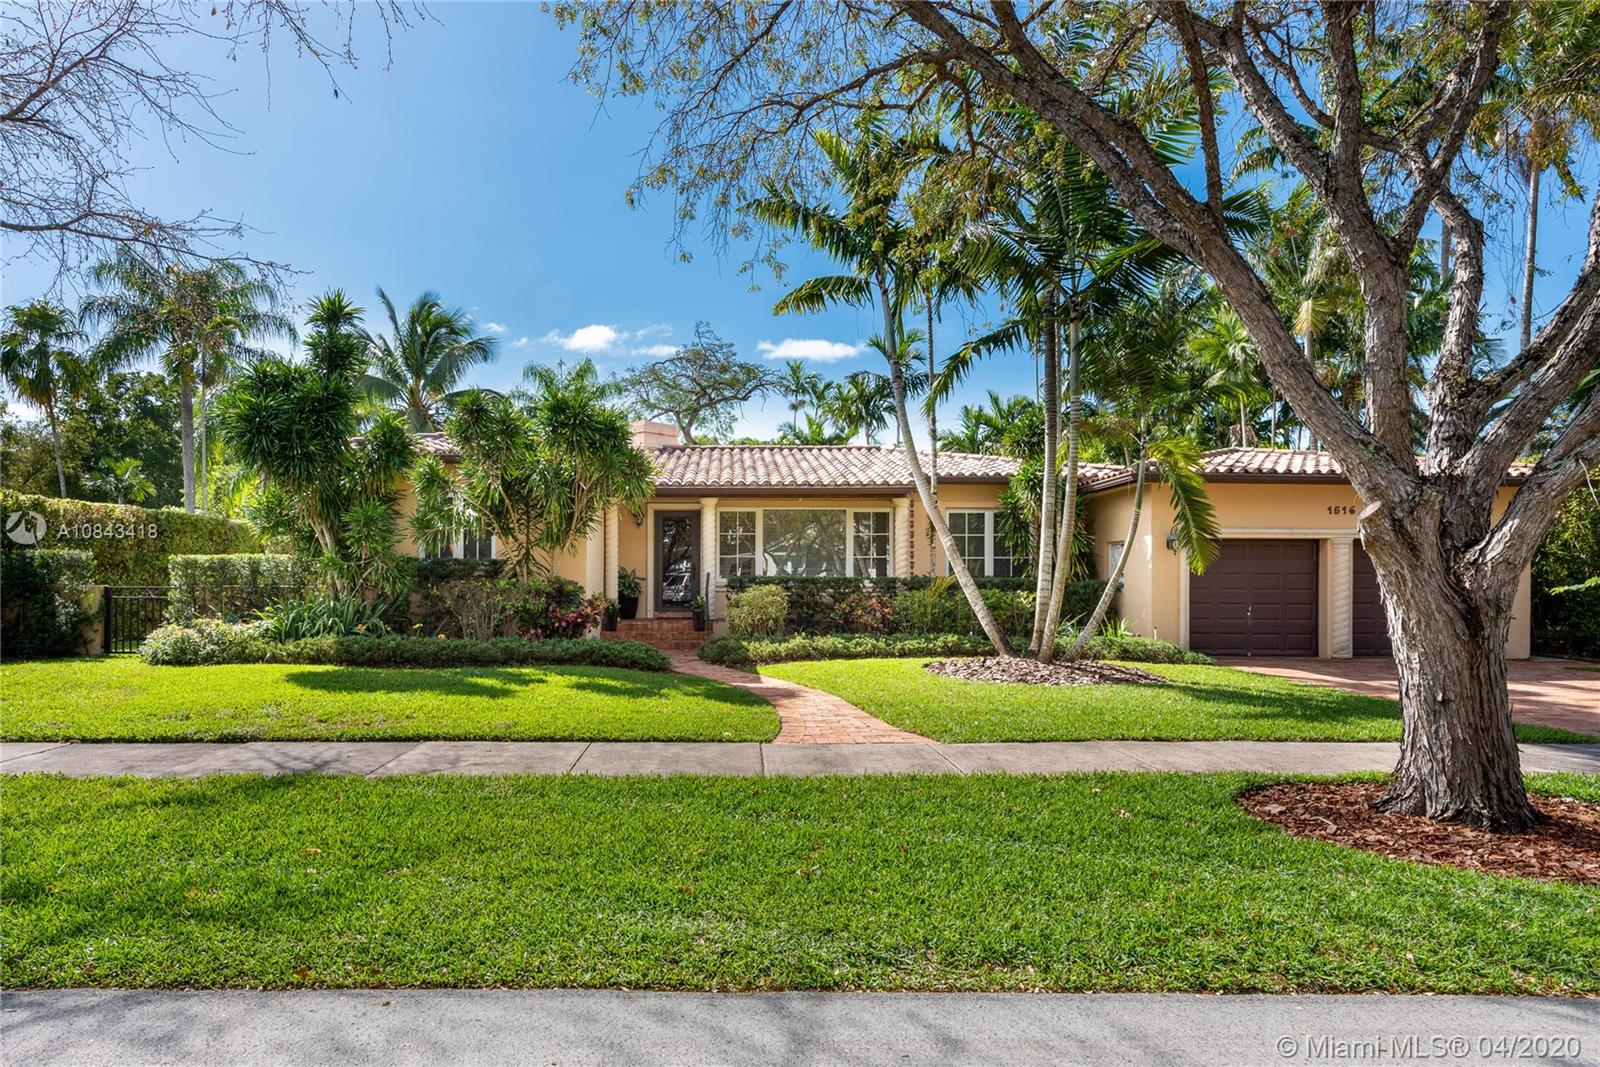 1516  Trevino Ave  For Sale A10843418, FL